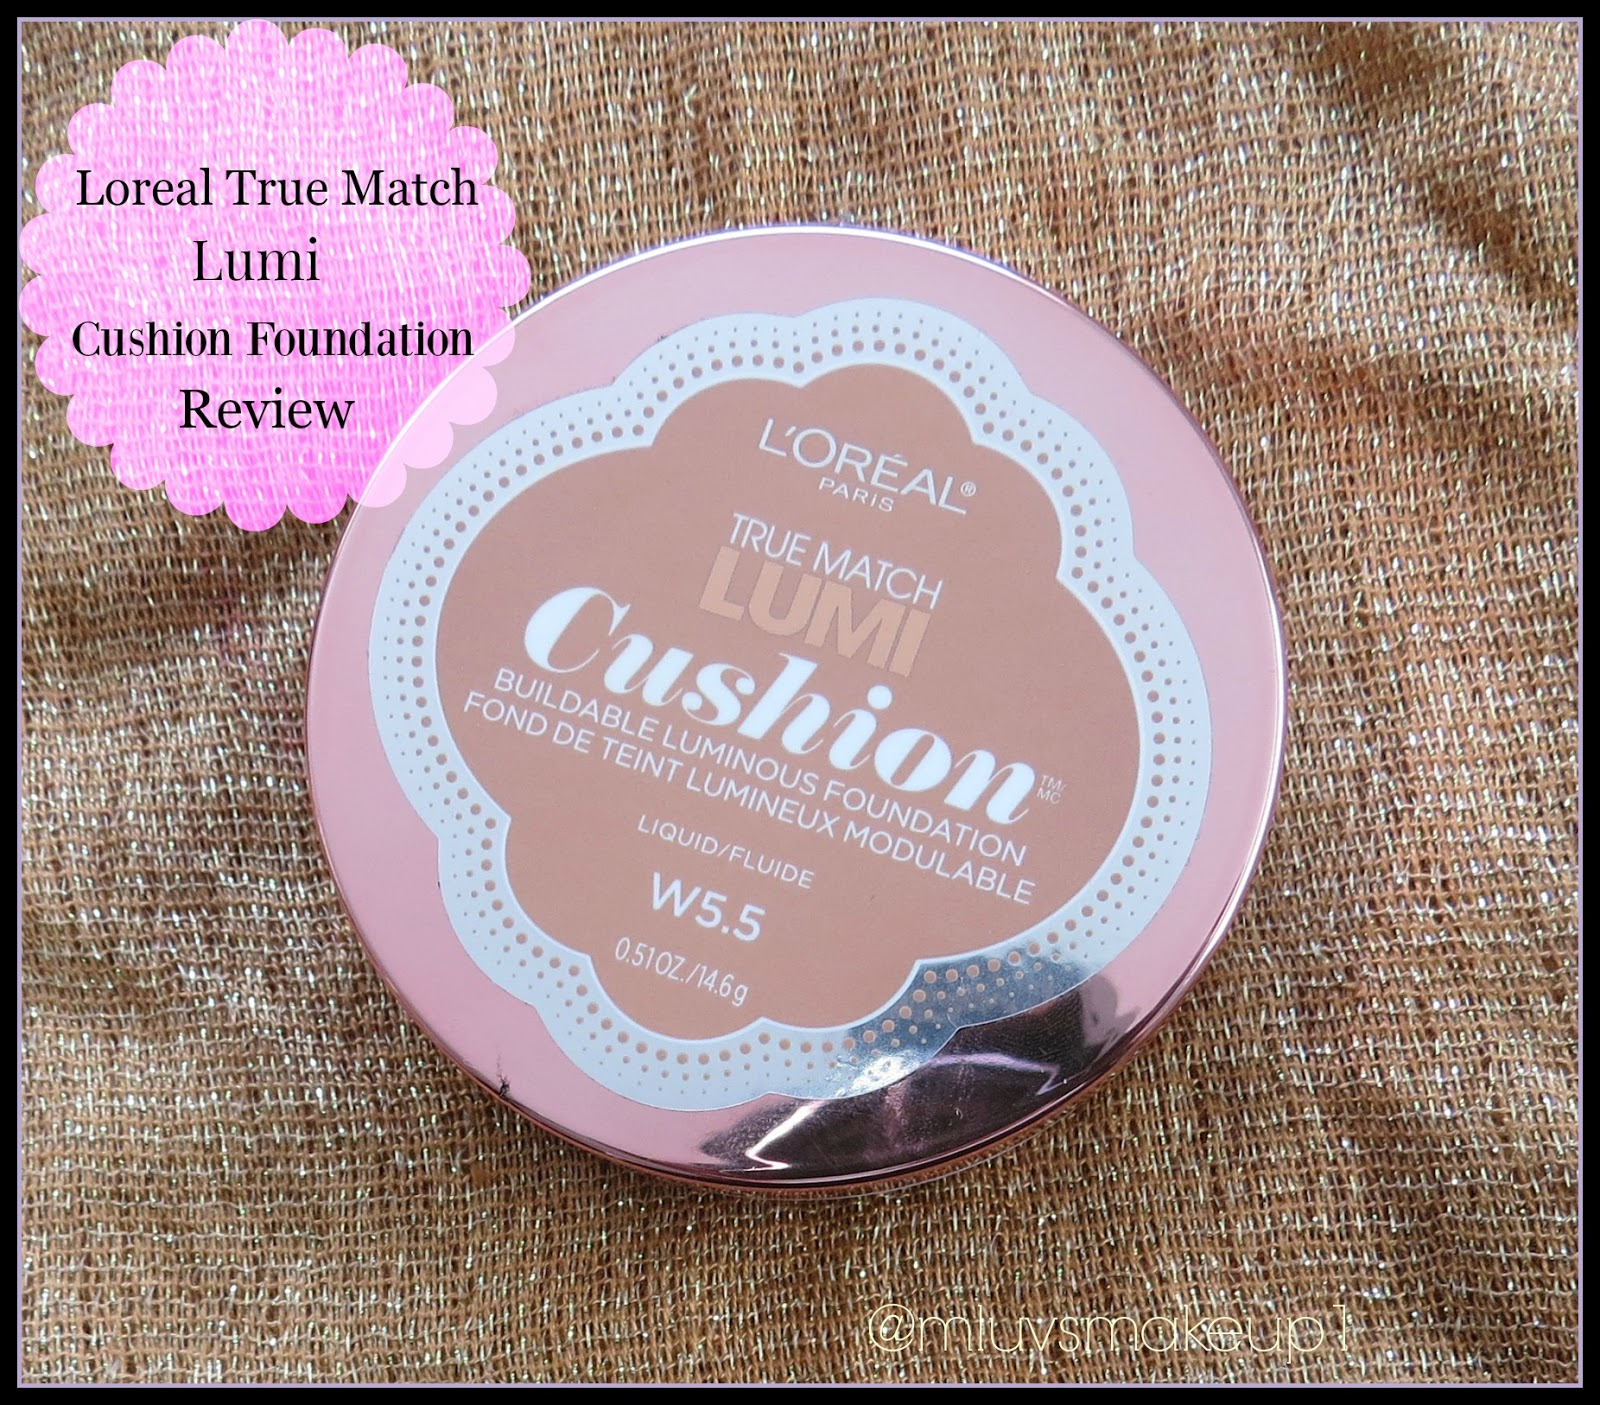 Muslimahluvsmakeup Loreal Lumi True Match Cushion Foundation Review Buildable Luminous